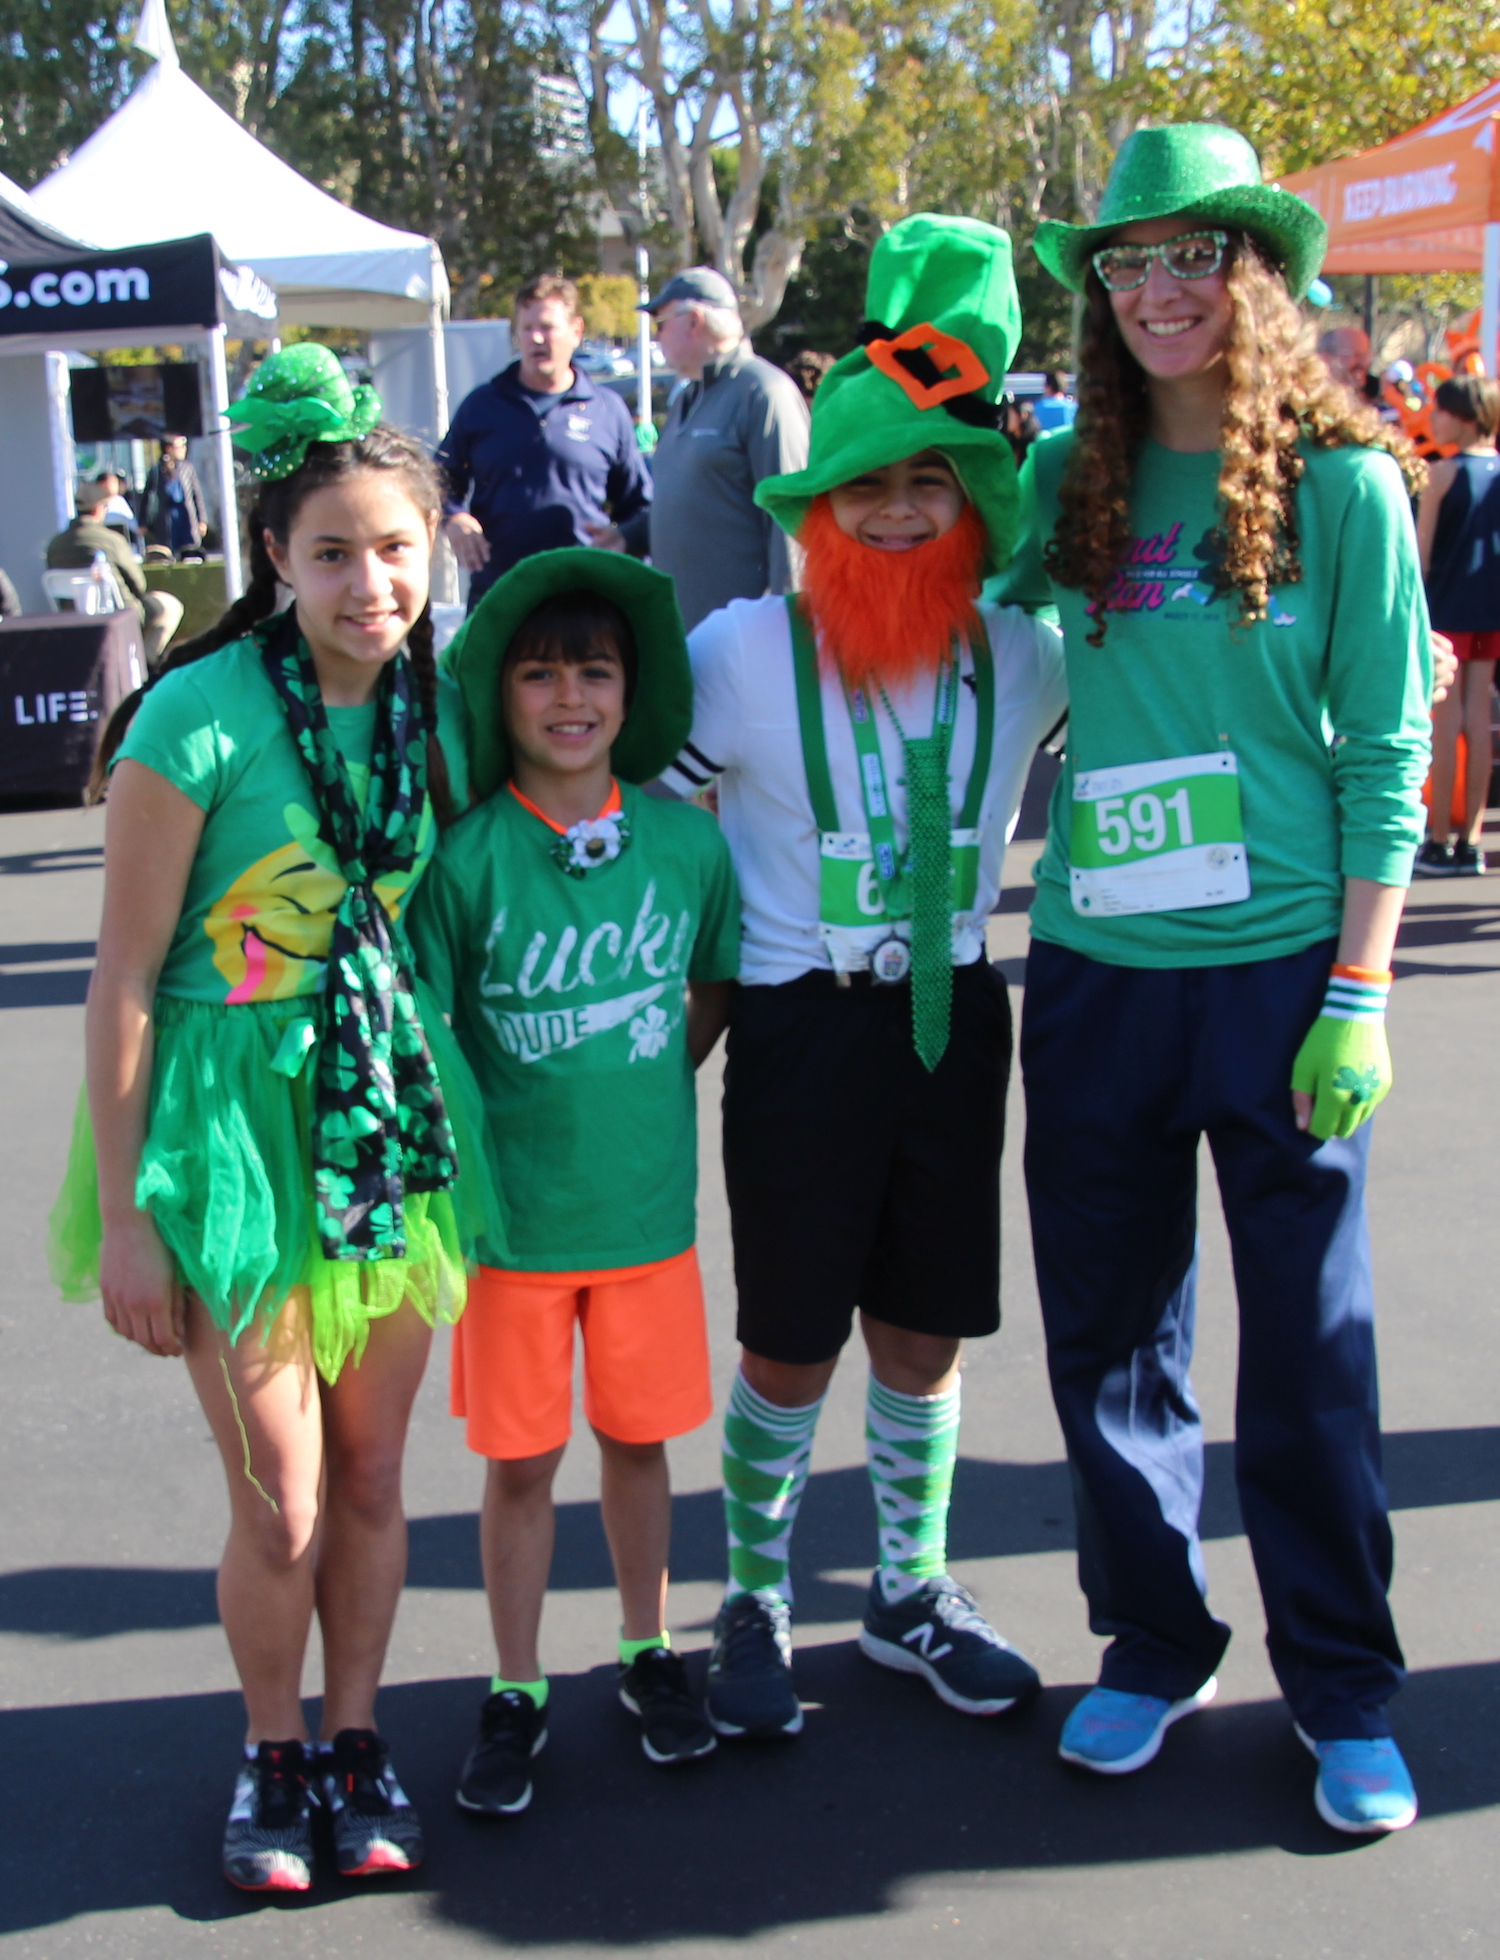 Spirit Run on St. Patrick's Day Created Memorable Moments - Read Stu News Newport for a recap of the fun enjoyed by all ages at the 36th Annual Spirit Run.